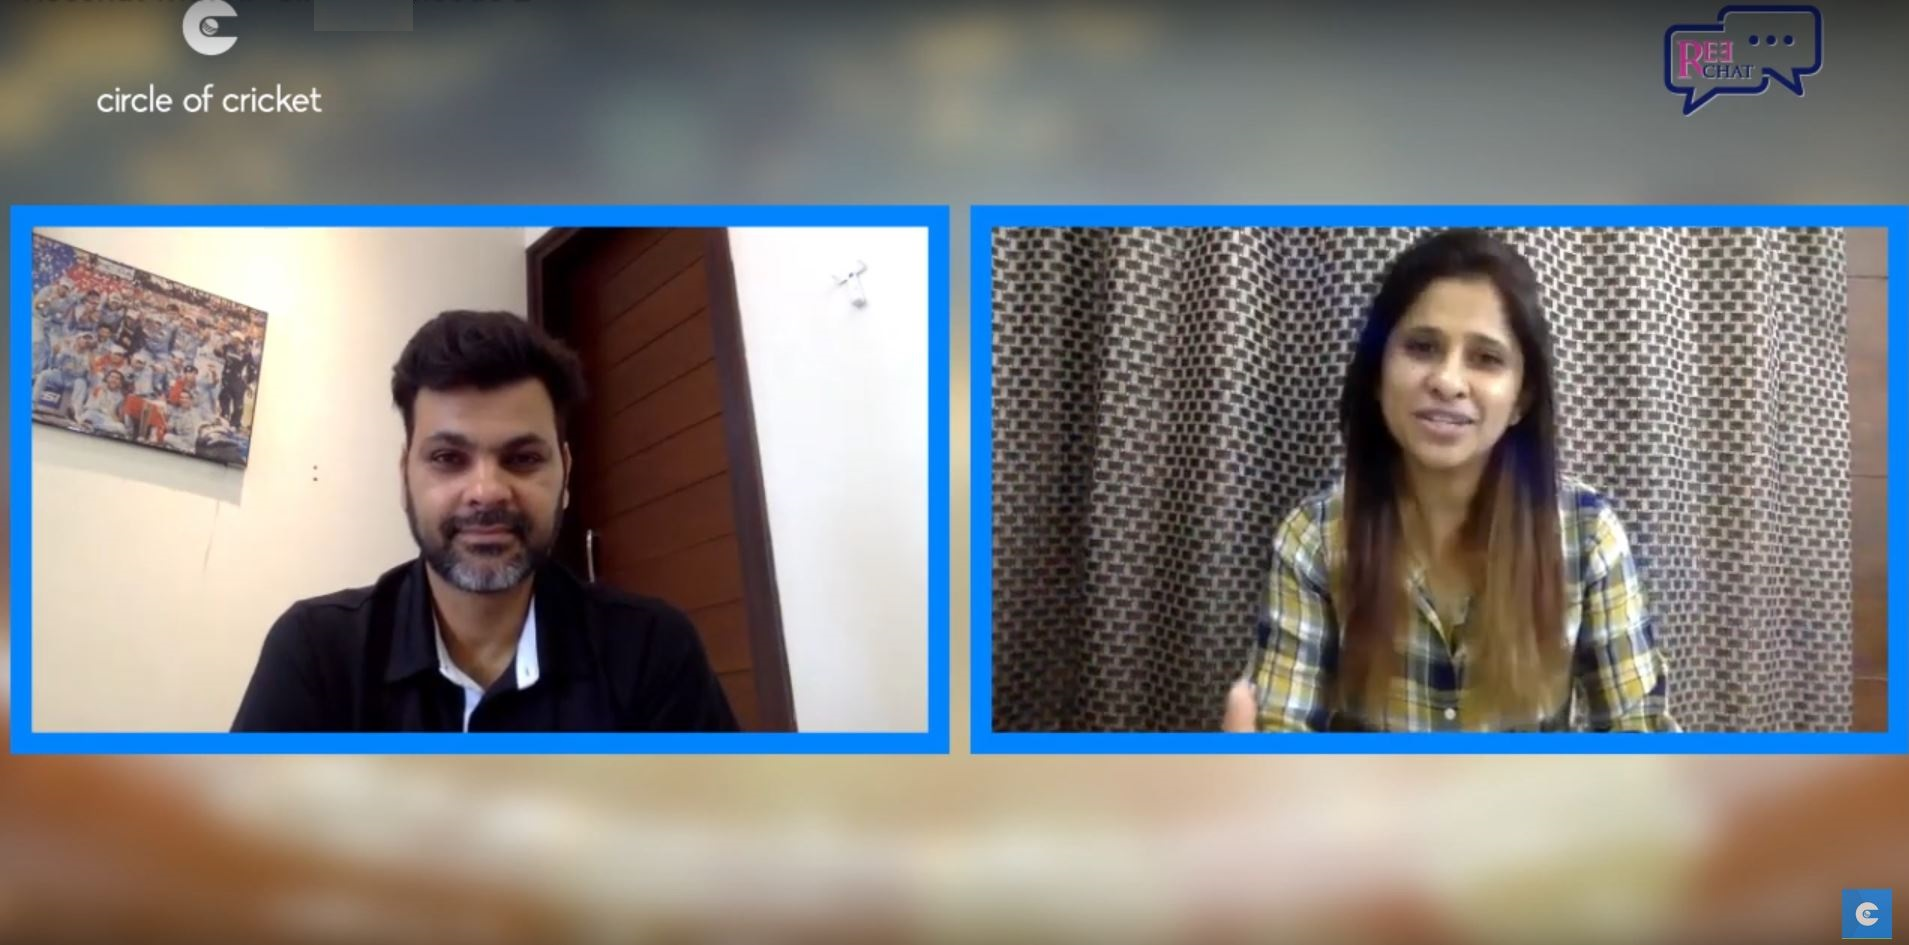 REECHAT- RP Singh in conversation with Reema Malhotra